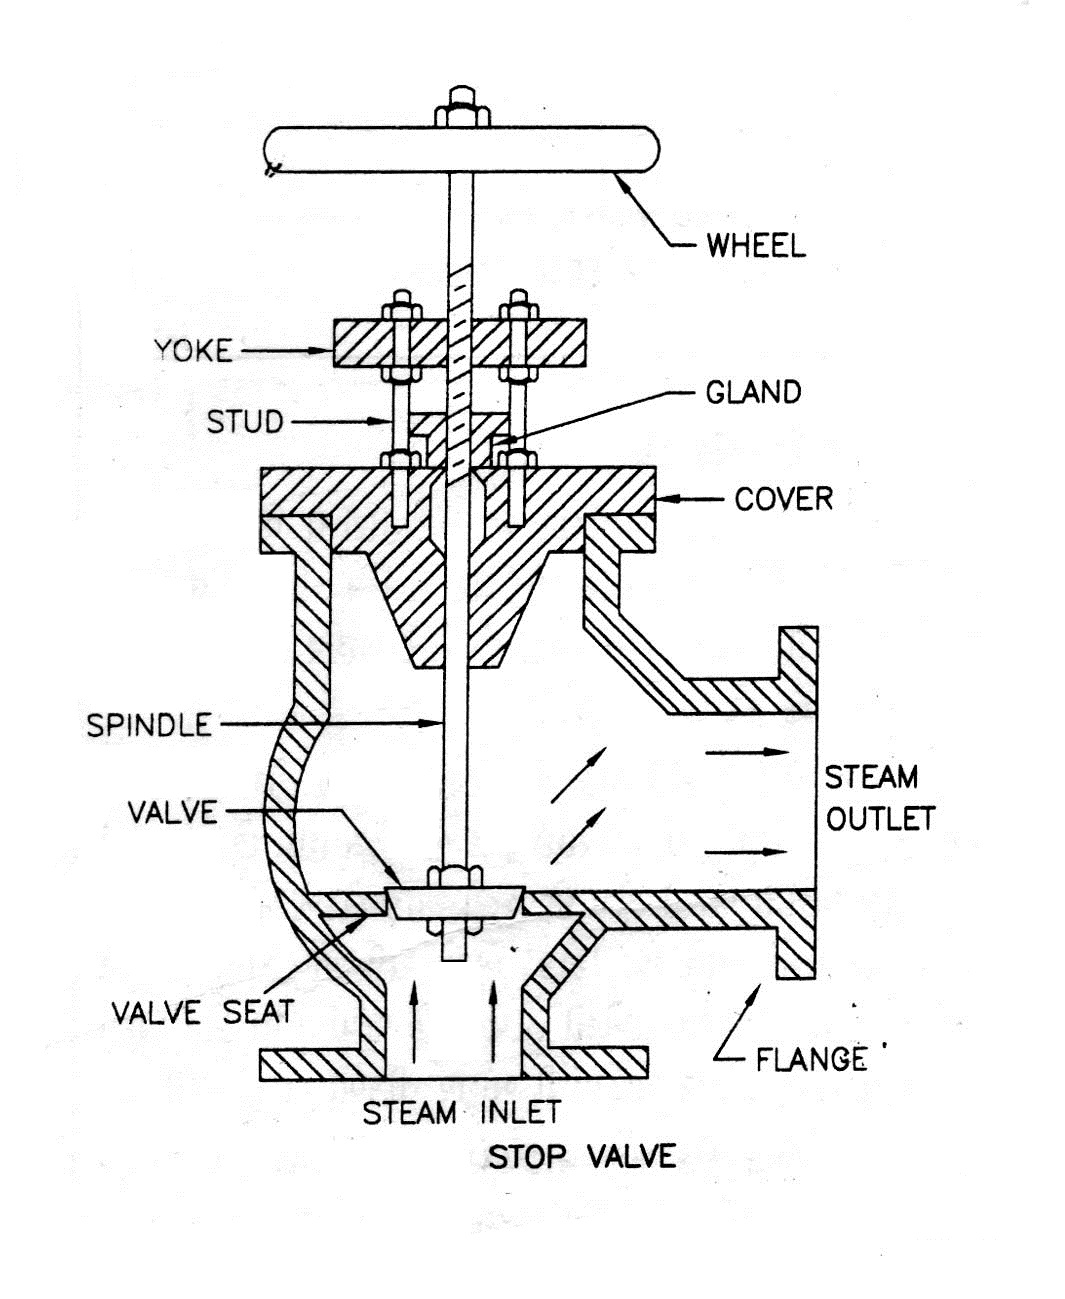 Steam Boiler: Steam Boiler Valves